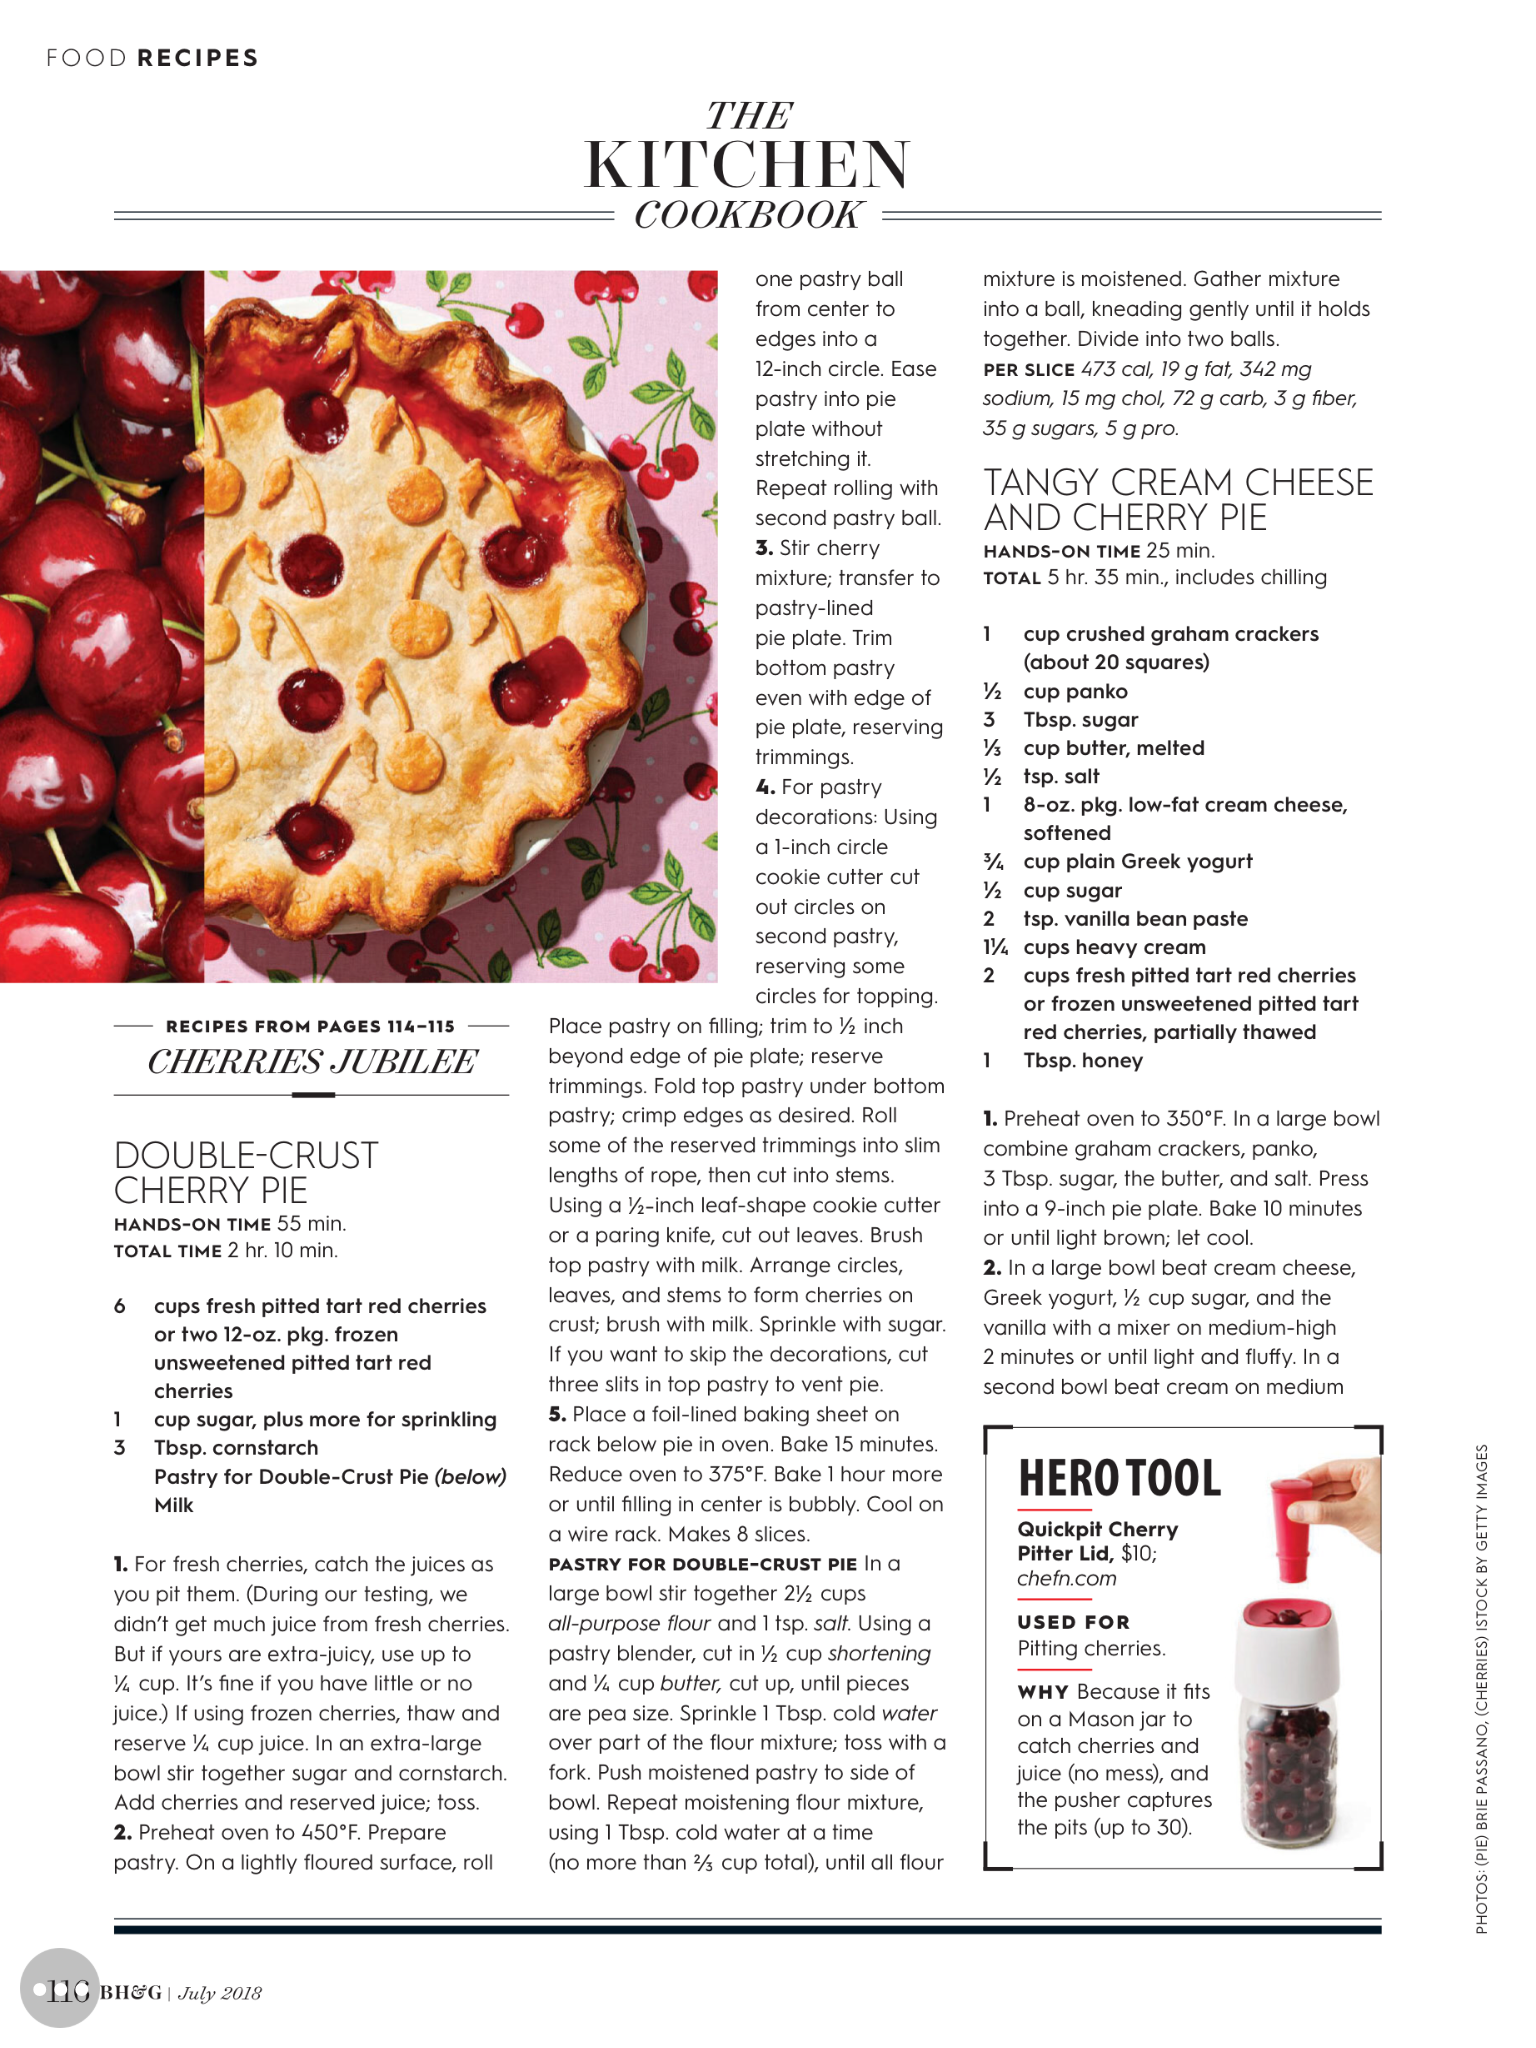 7bfecf4f196b643eb2d9fb4924480087 - Better Homes And Gardens Cherry Pie Recipe